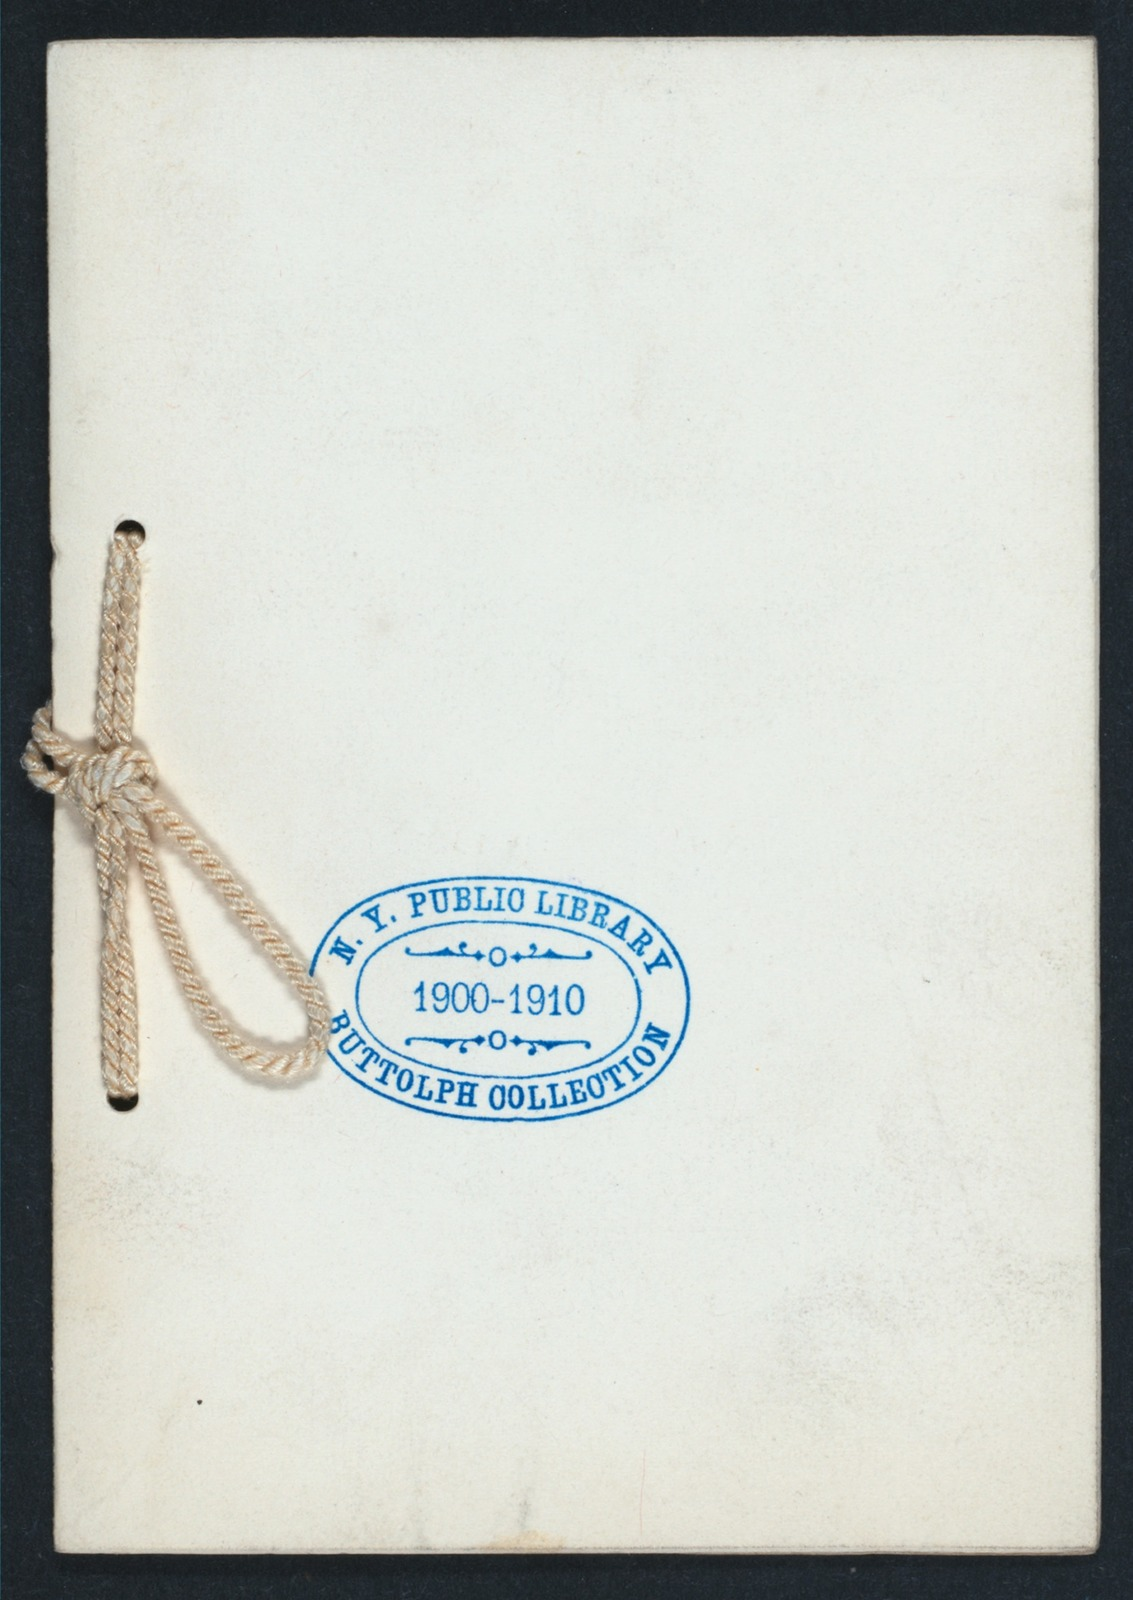 ANNUAL DINNER [held by] SATURDAY ONE O'CLOCK KNOCKERS CLUB [at] REPUBLICAN CLUB OF THE CITY OF NEW YORK (OTHER (CLUB);)